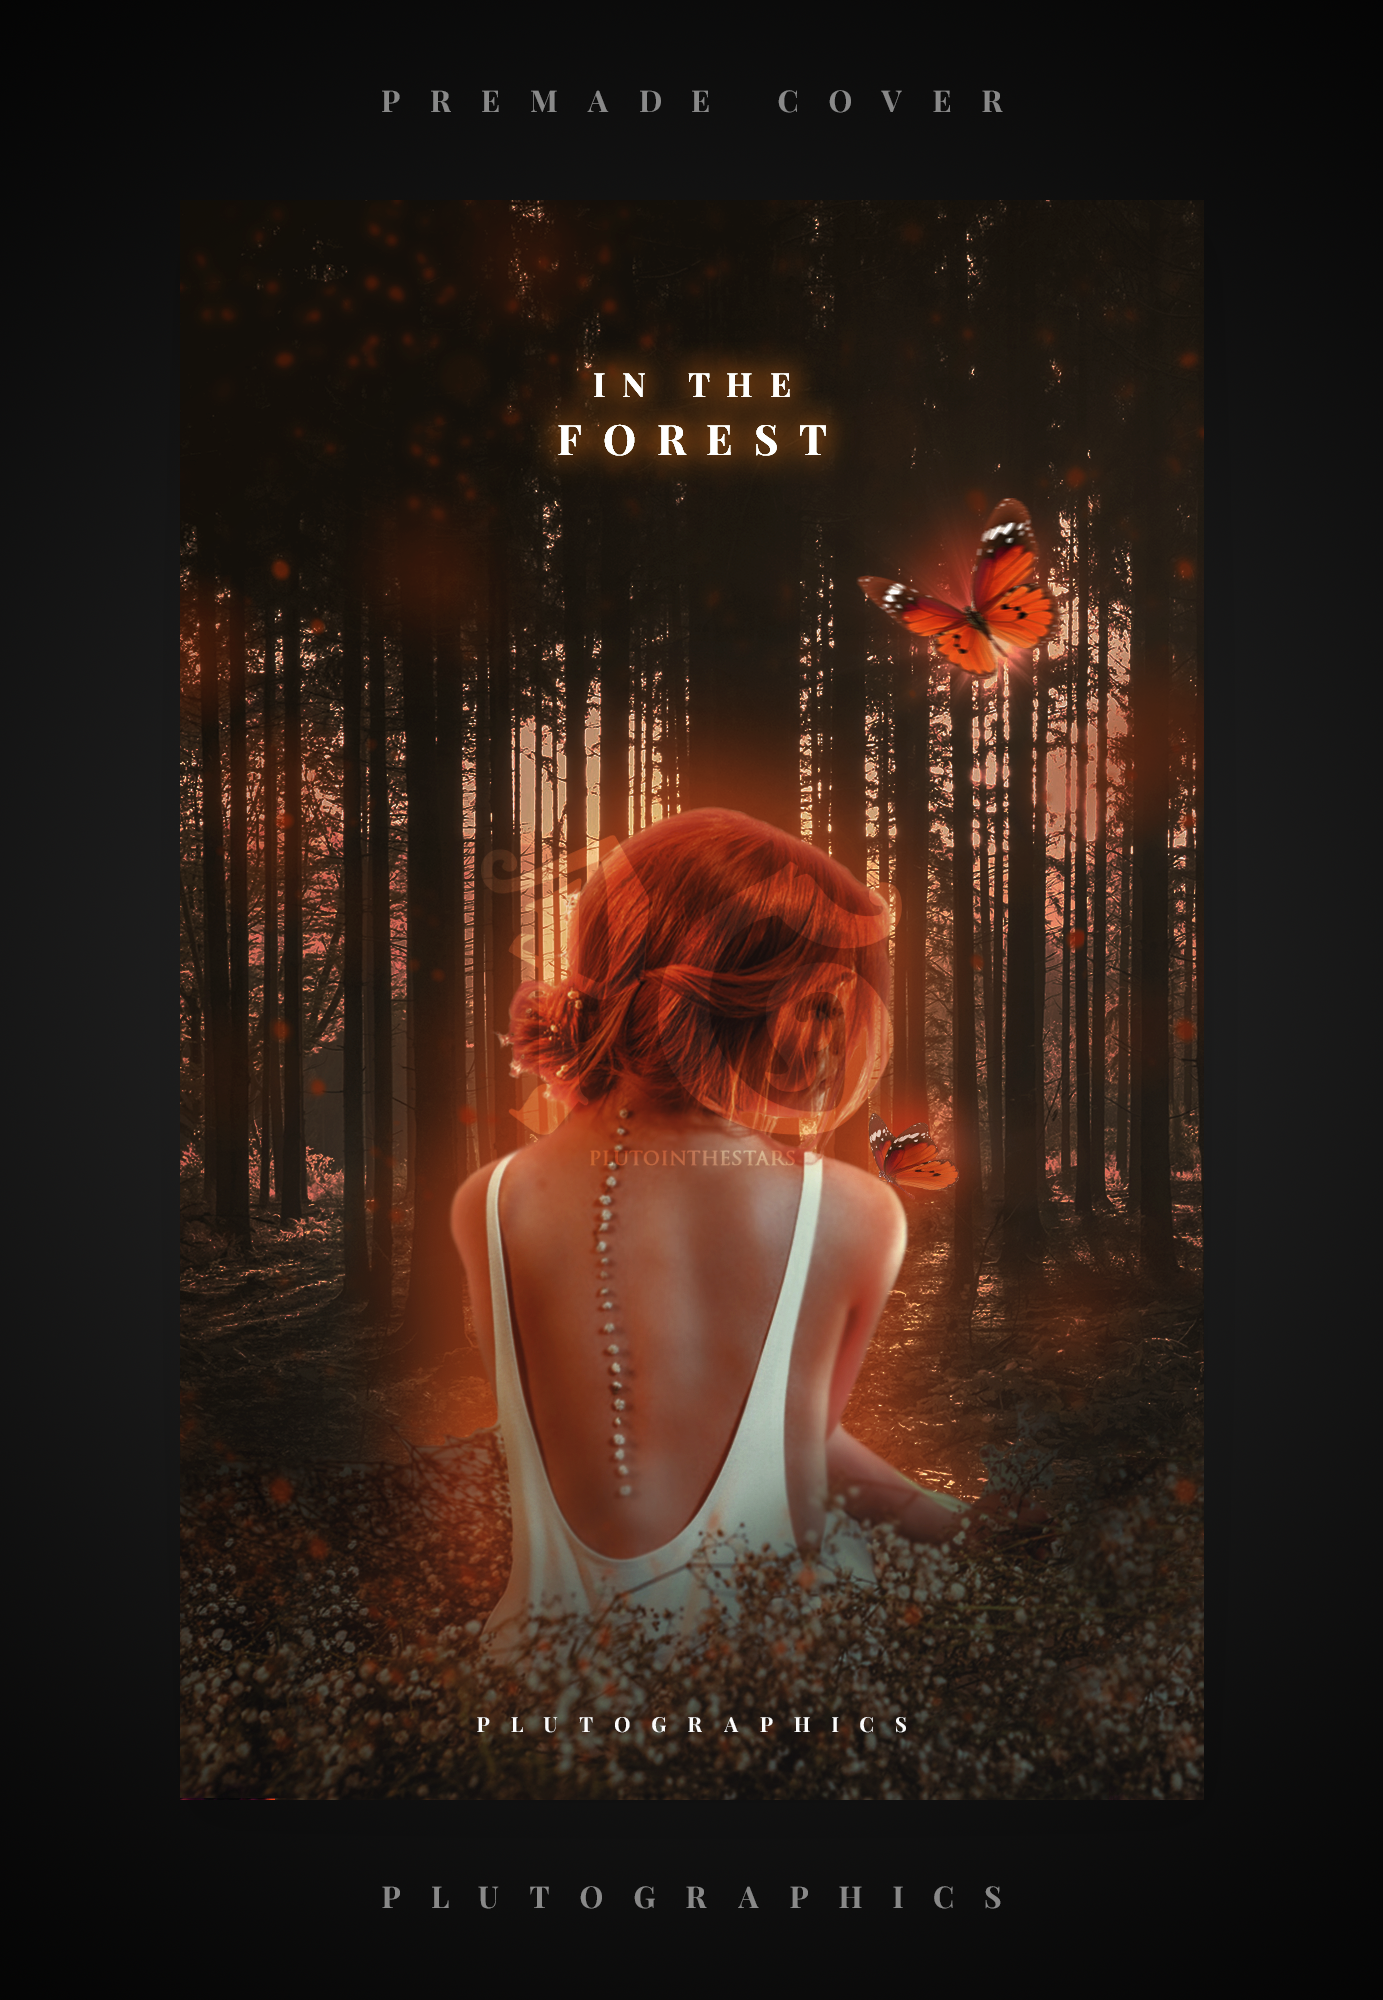 In The Forest - Premade Wattpad Cover